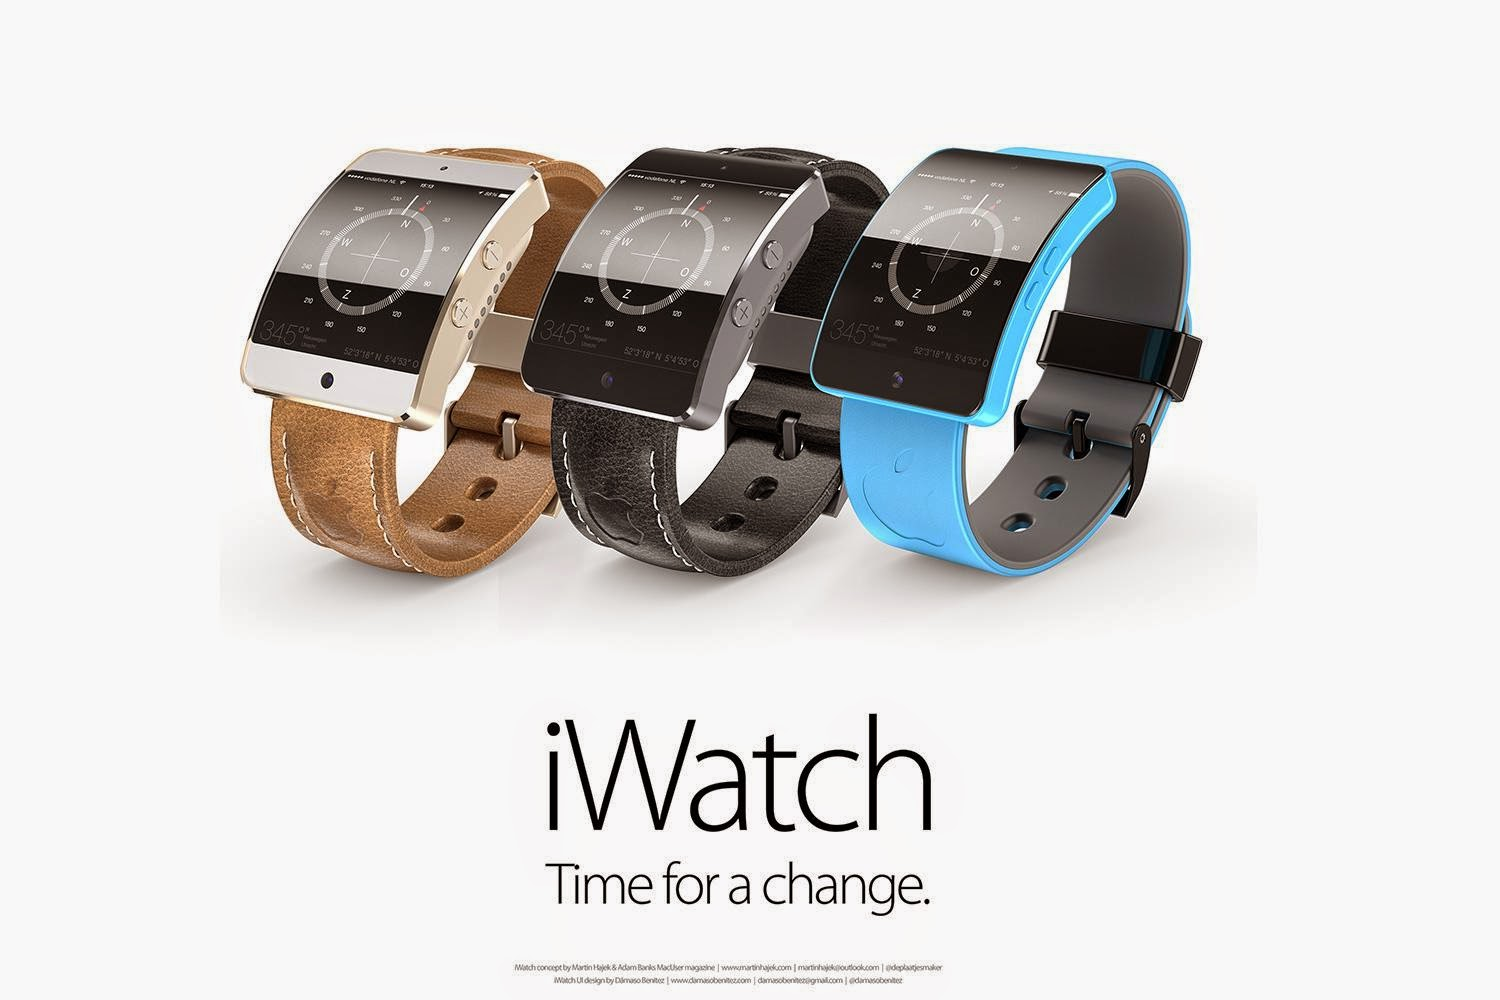 apple iwatch,iwatch,apple iwatch specification,apple watch,watch apple,cost of apple iwatch,apple website